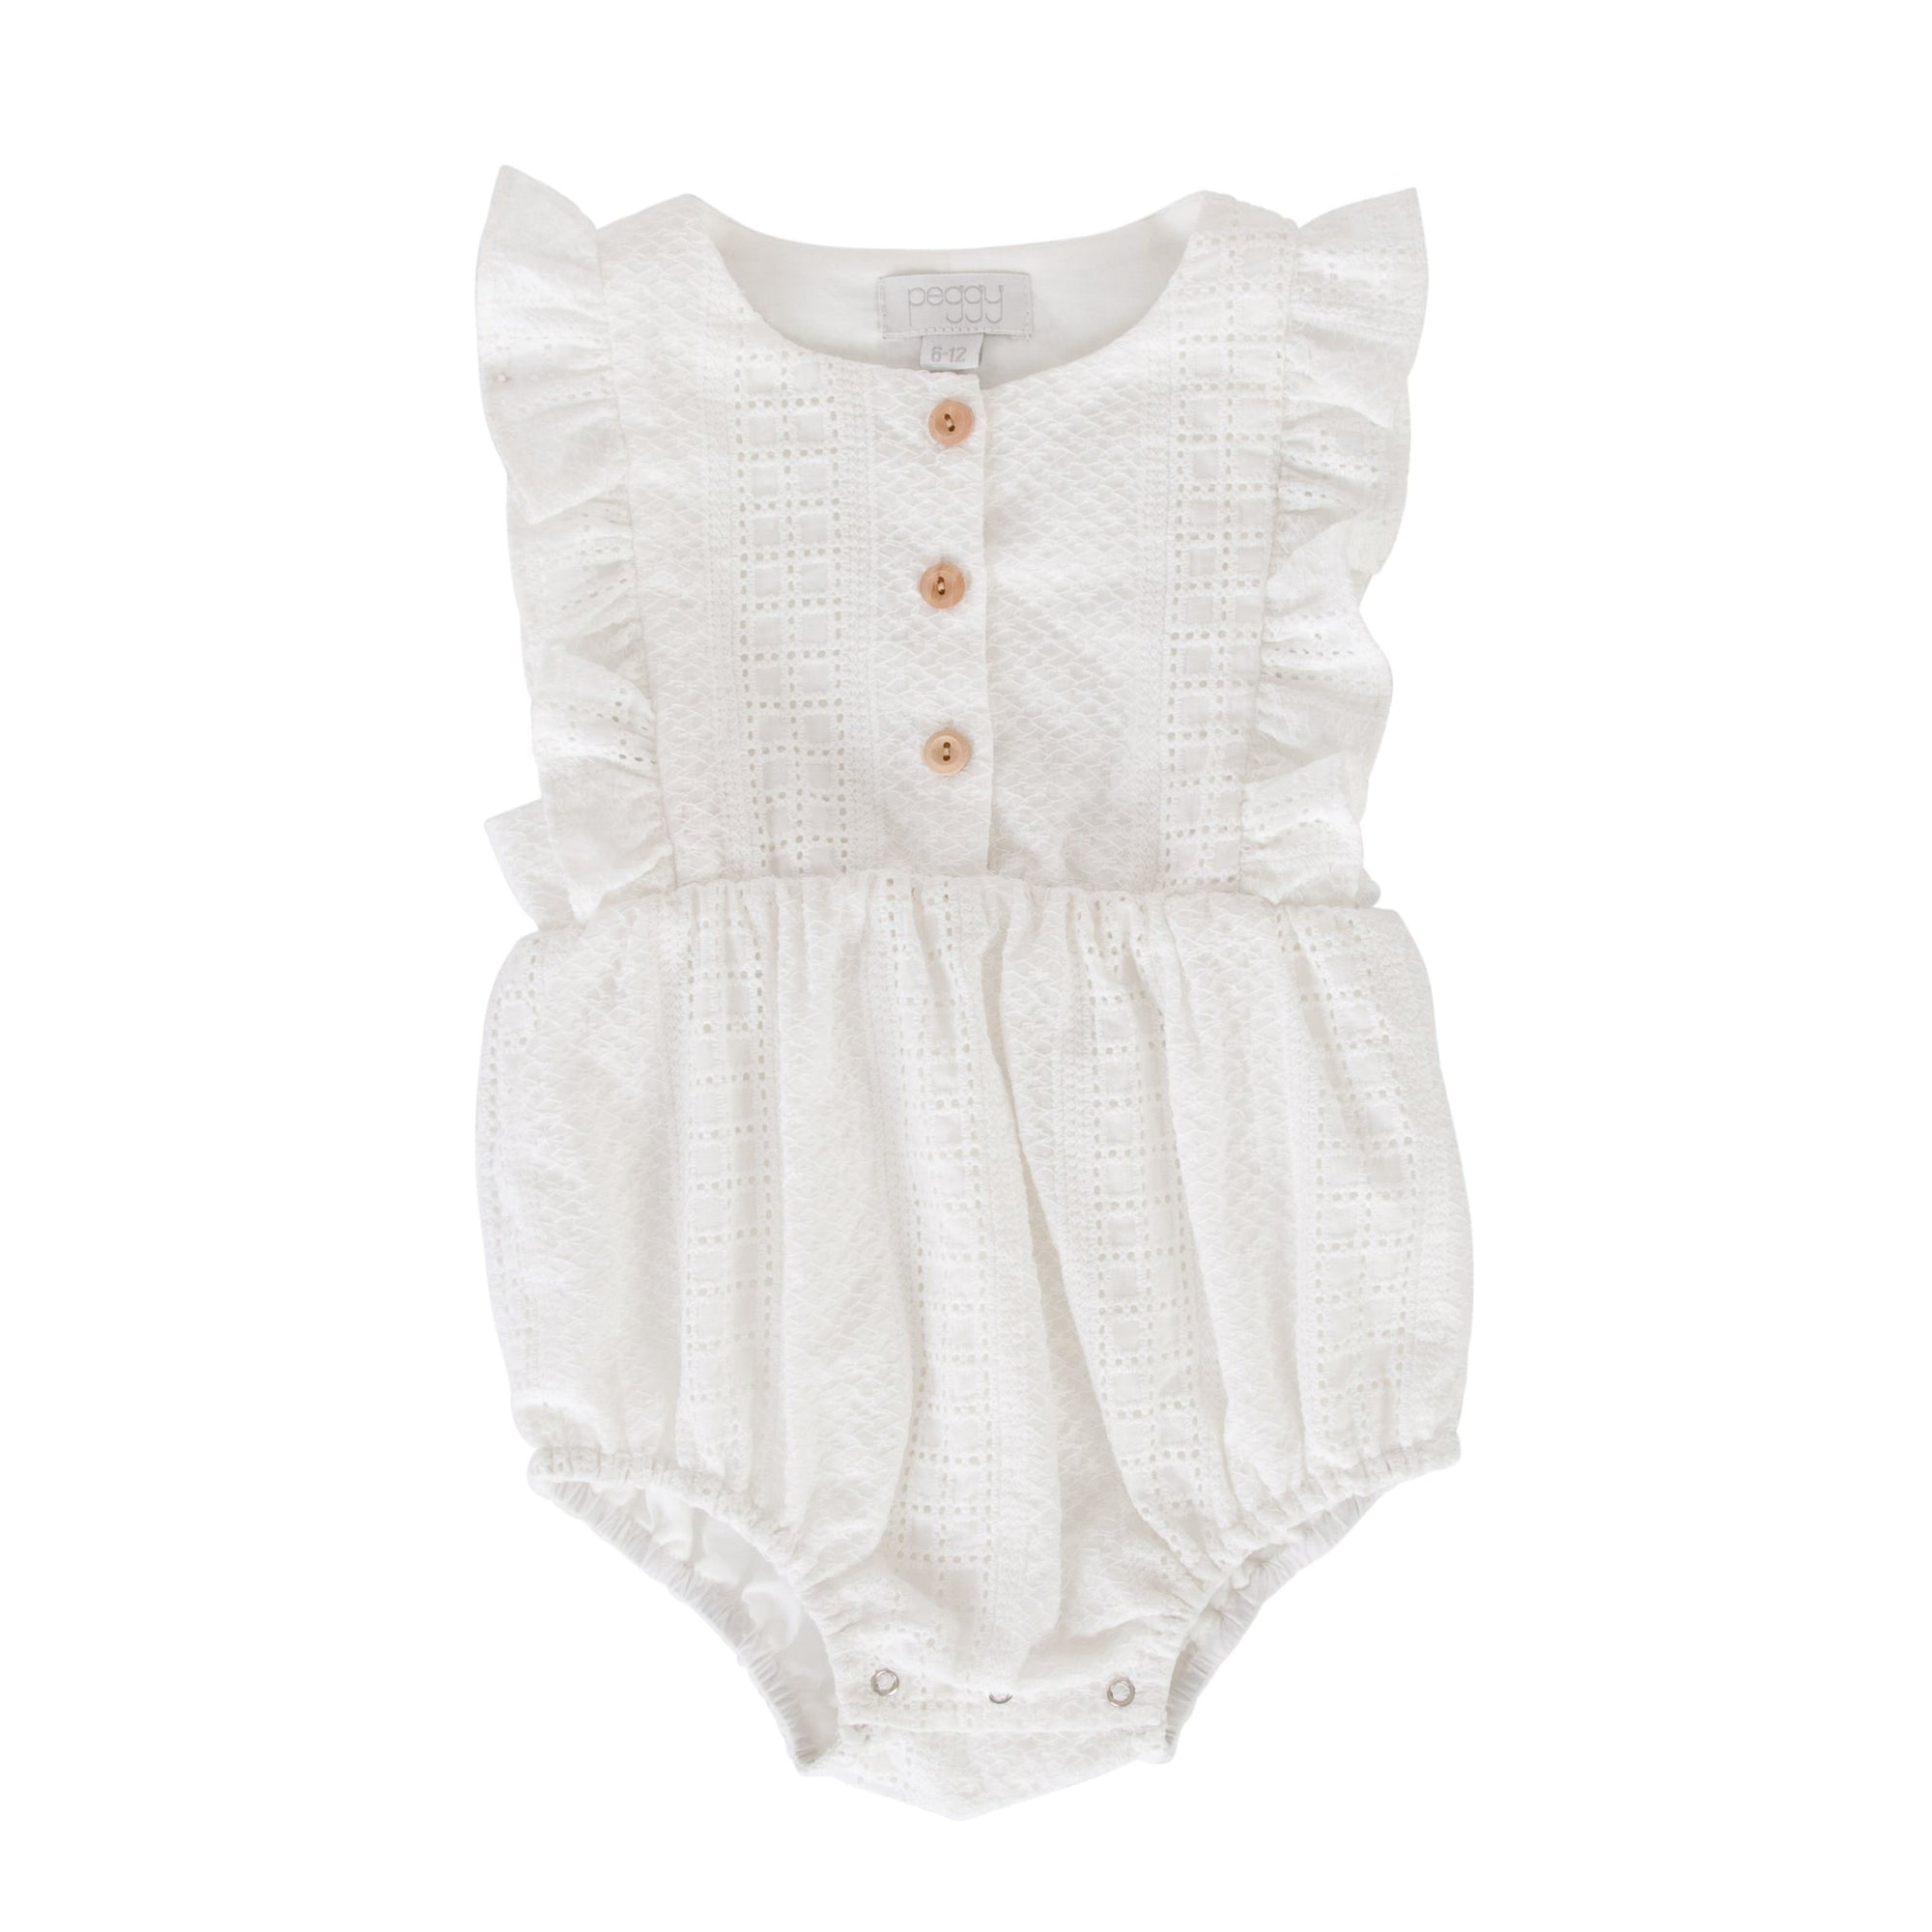 Peggy August Playsuit White Broidere Playsuit - Tiny People Cool Kids Clothes